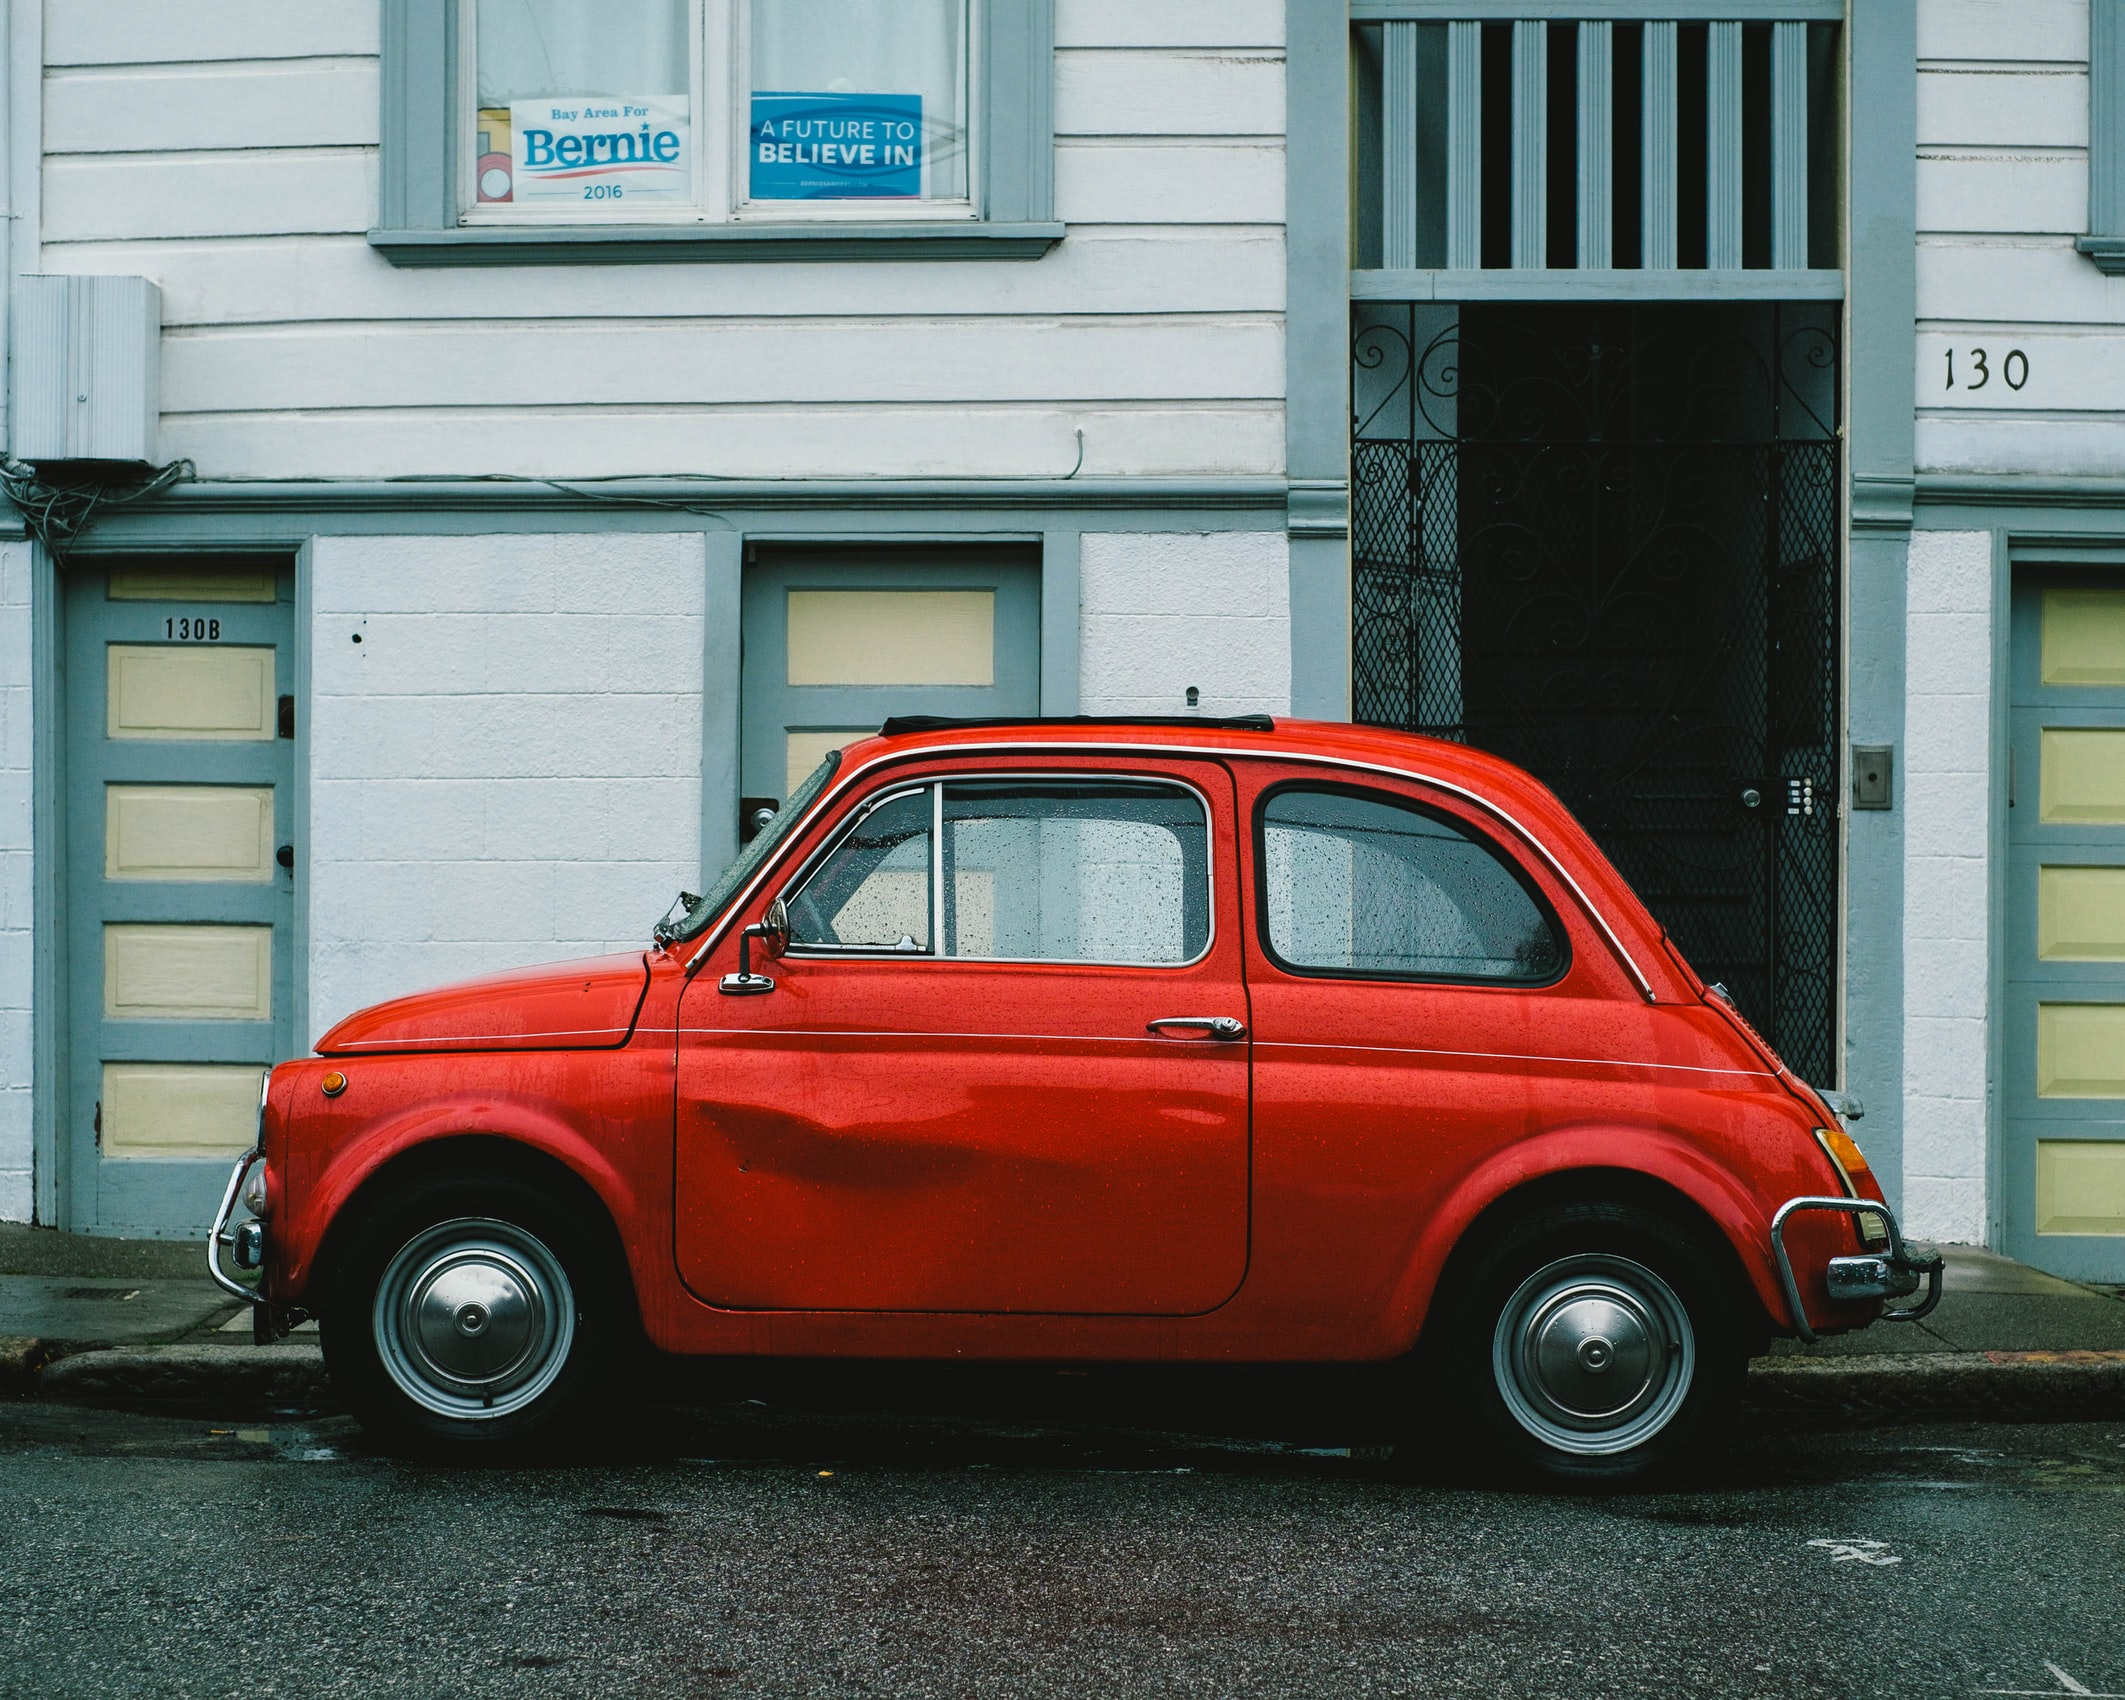 cinquecento in the city by Adam Griffith